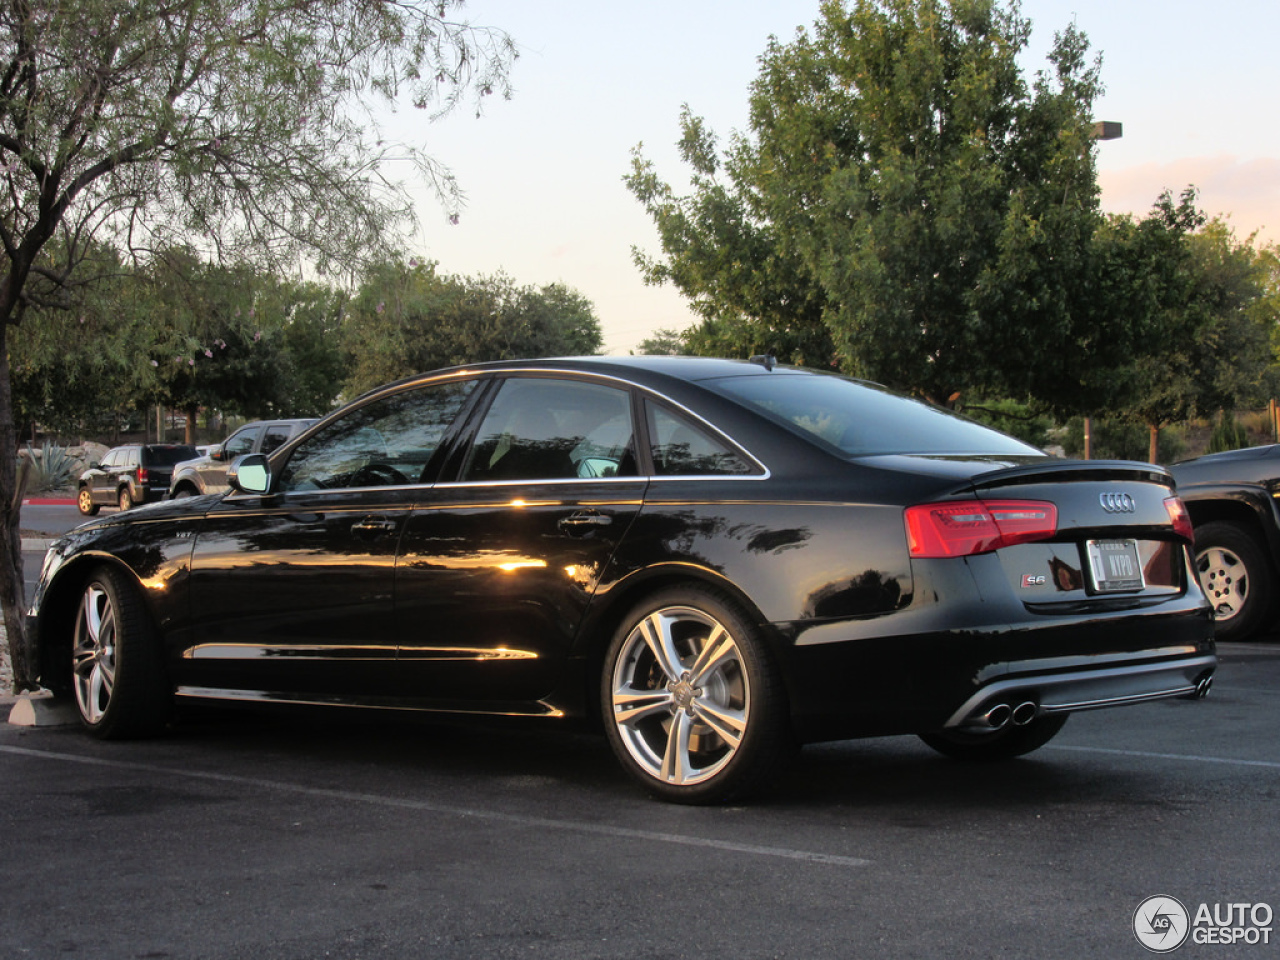 Audi S6 Sedan C7 15 September 2014 Autogespot